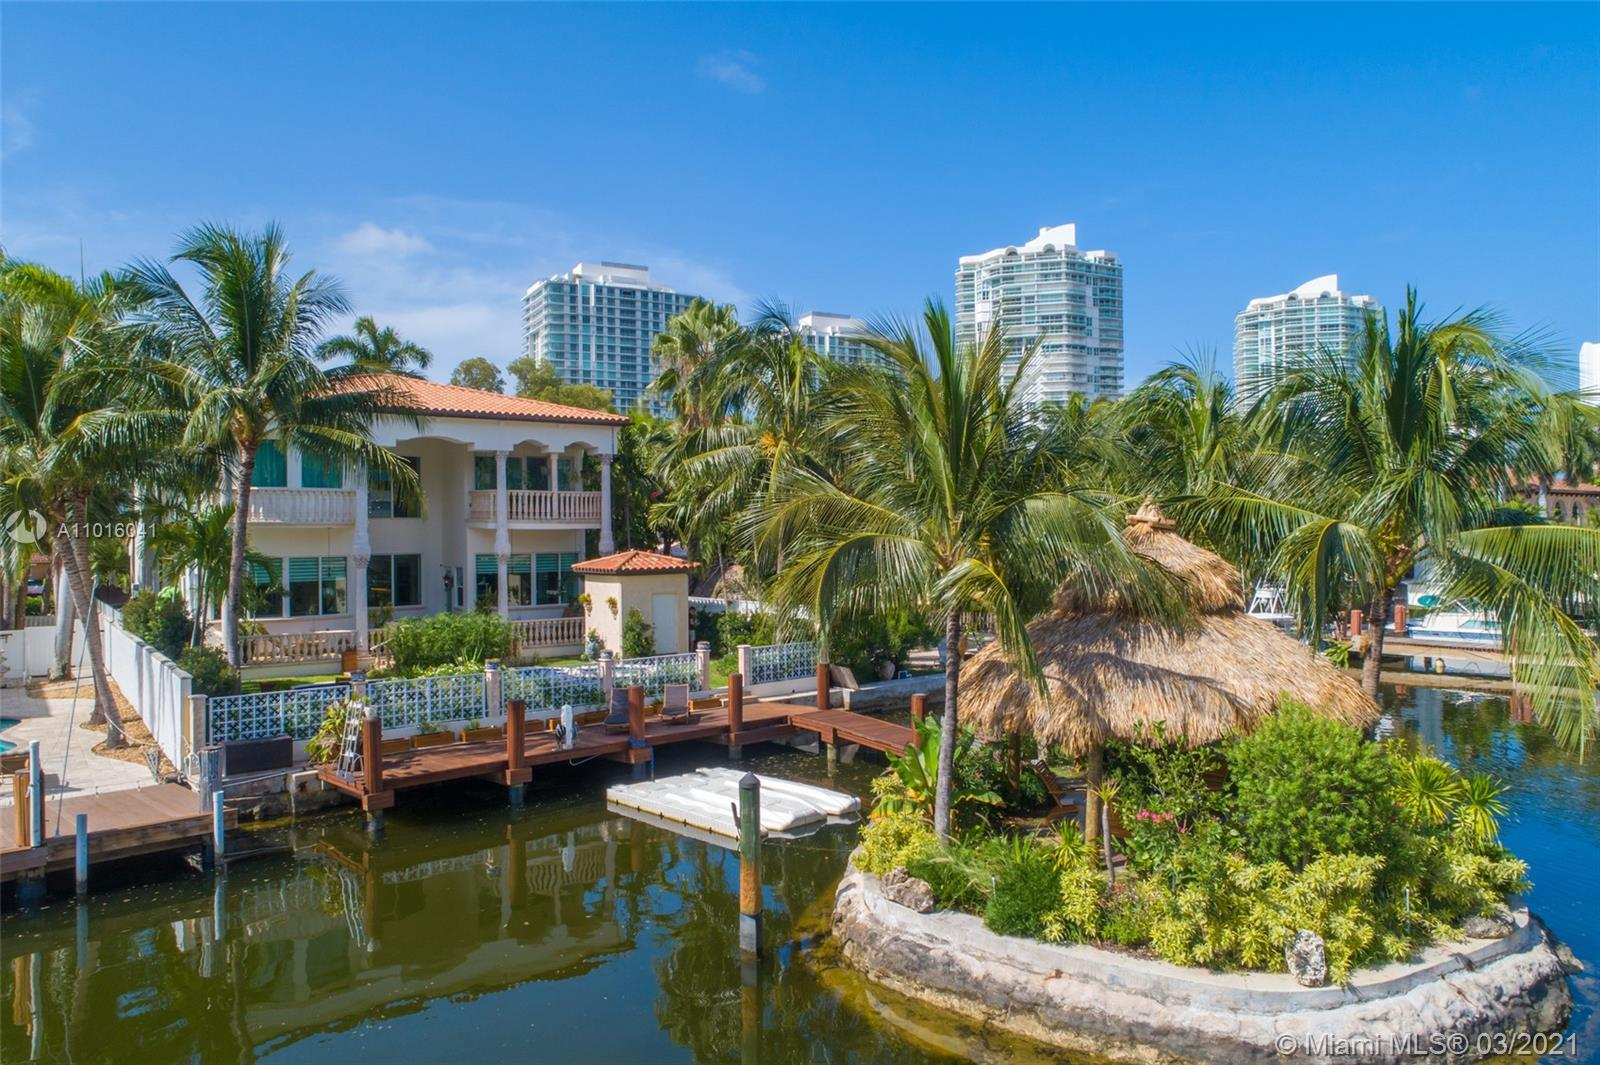 Truly an aquatic paradise, this incredibly elegant waterfront estate offers a magnificent 6,135 total SF 5bd/5.2ba floorplan situated on a 9,225 SF lot. 60ft of water frontage w/a 40ft dock + separate 2-jet ski slip overlooking the residence's secluded private island. No fixed bridges to the bay or Ocean. Additional features include: grand atrium entrance, dramatic high-volume ceilings, designer finishes, detached guest suite, oversized impact windows/doors, elevator, 2 laundry rooms & chef's open kitchen overlooking pool area. The regal double Master suites on the airy 2nd floor each offer gigantic walk-in closets, sitting areas, spa-like baths w/toto toilets & private terrace. 2-car garage, gym, & pool area w/cabana bathroom. Exclusive beach access from HOA for only $1 a day.